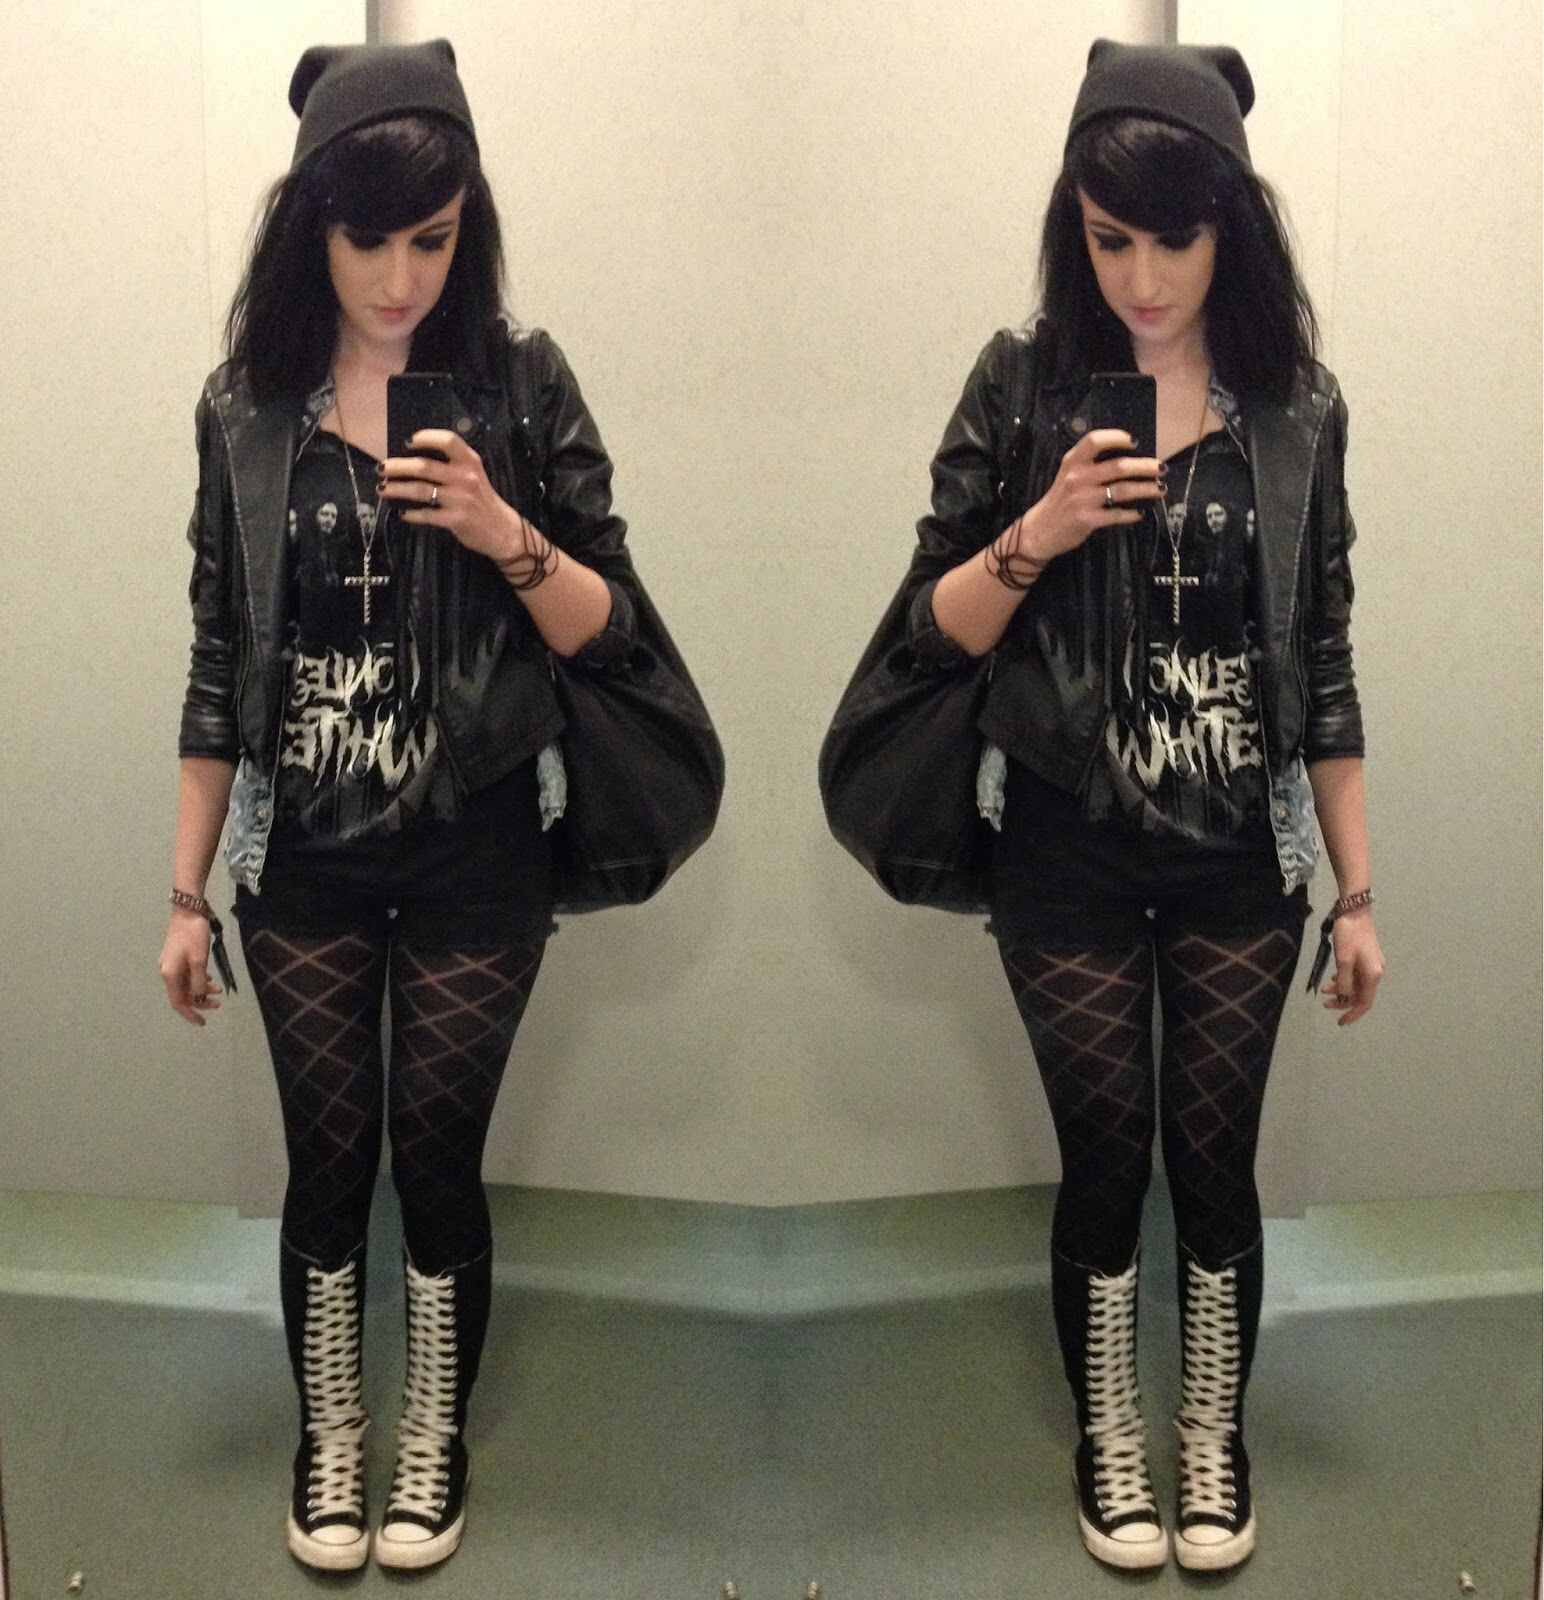 Leather jacket diy - Beanie Motionless In White Diy Band Shirt Leather Jacket Shorts Tights And